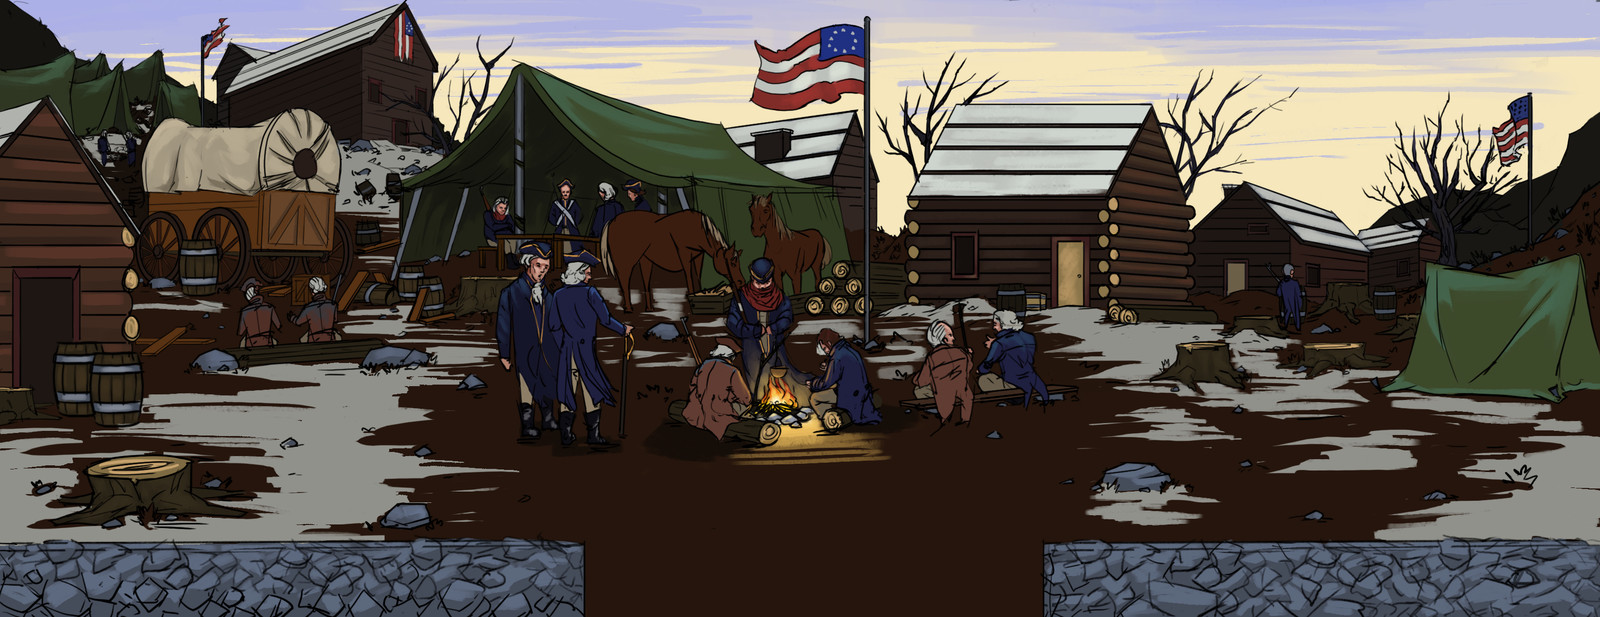 Valley Forge Background Concept